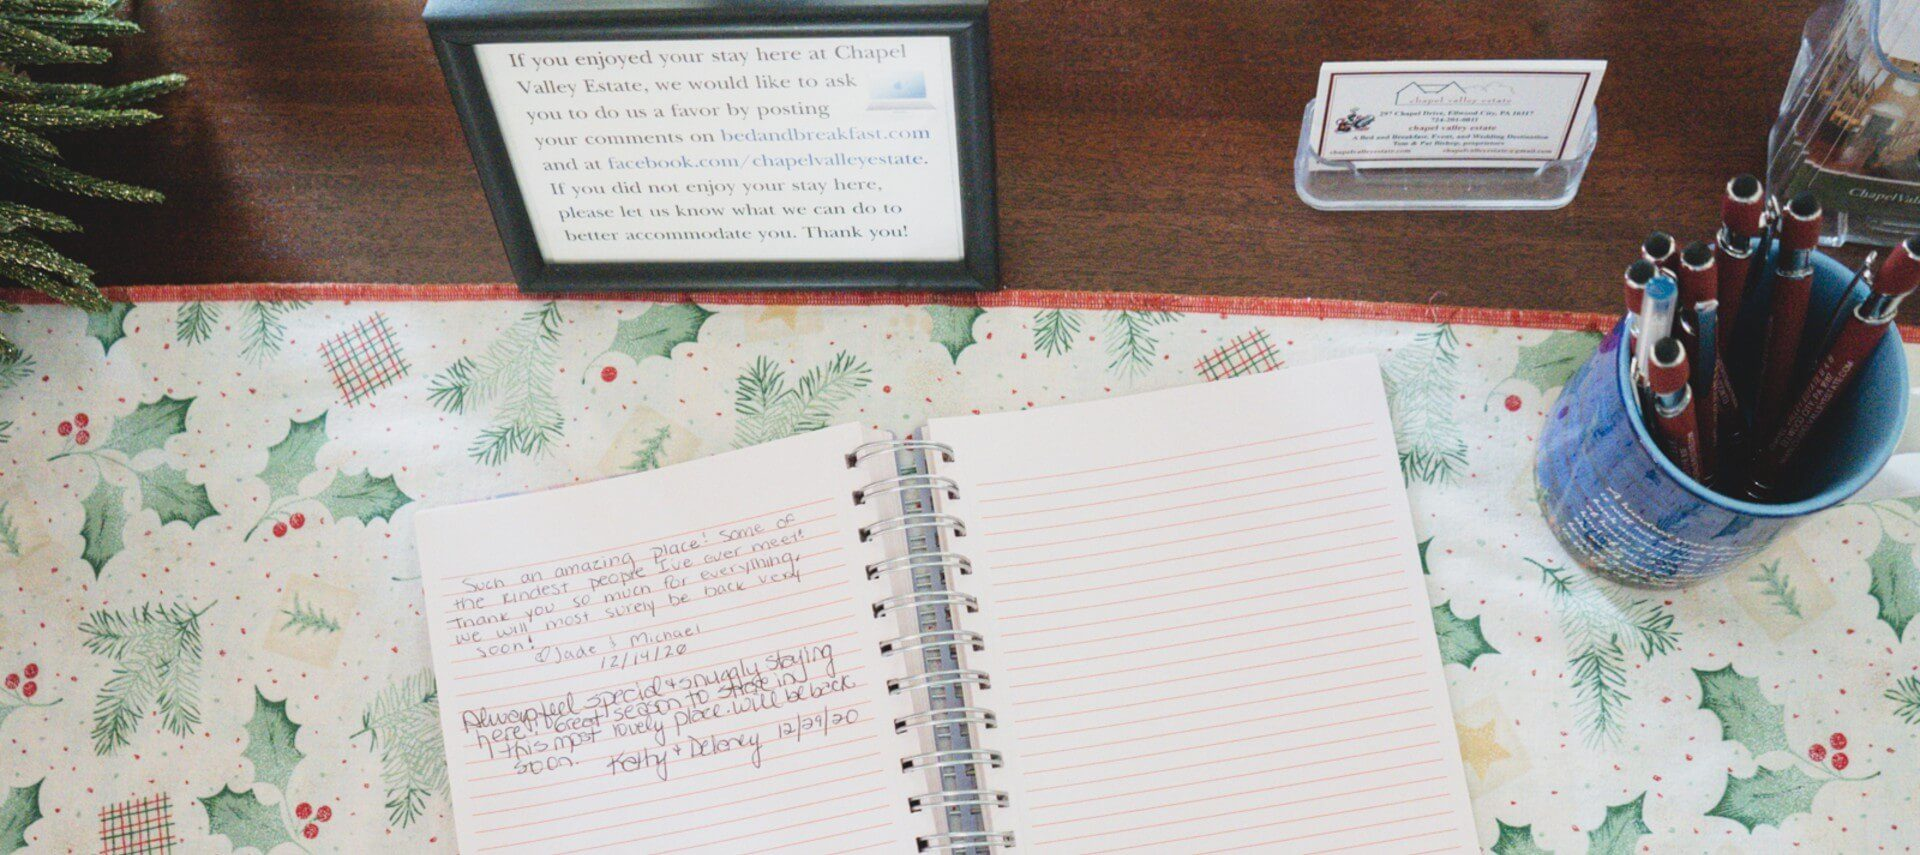 An open notebook with handwritten reviews on a Christmas themed placemat with cup of pens